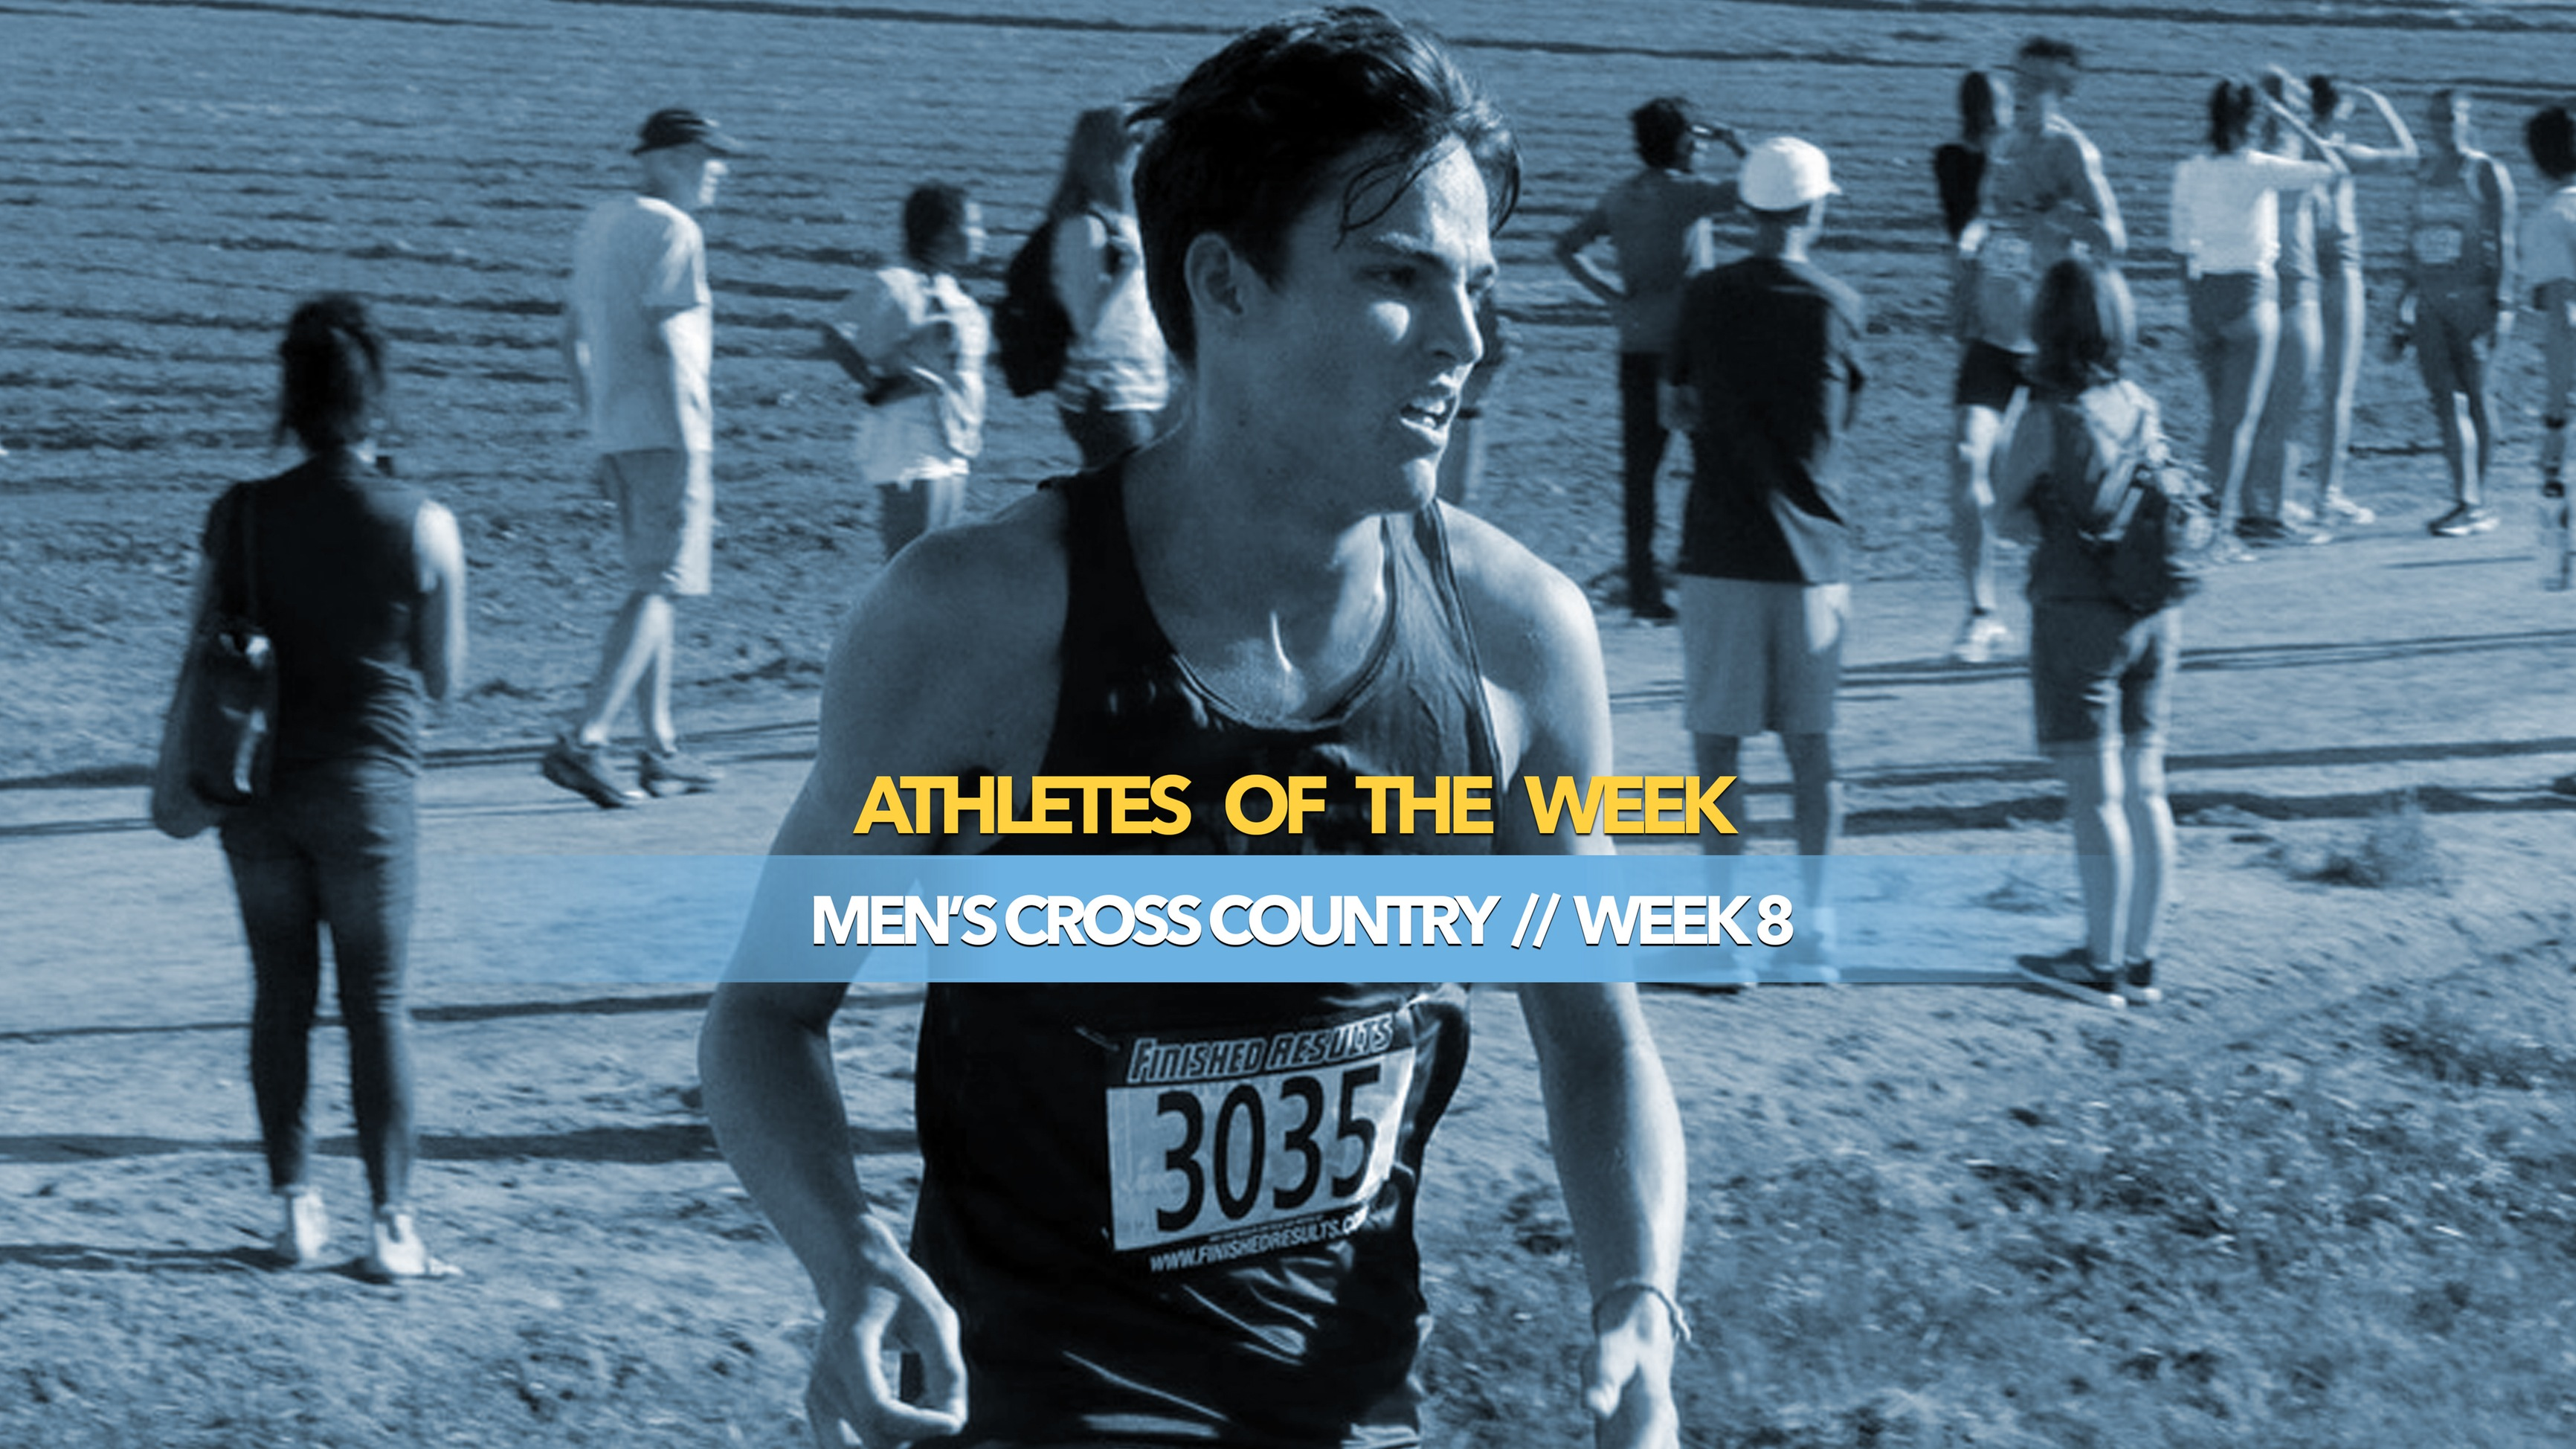 Men's Cross Country Athlete of the Week: October 21, 2019